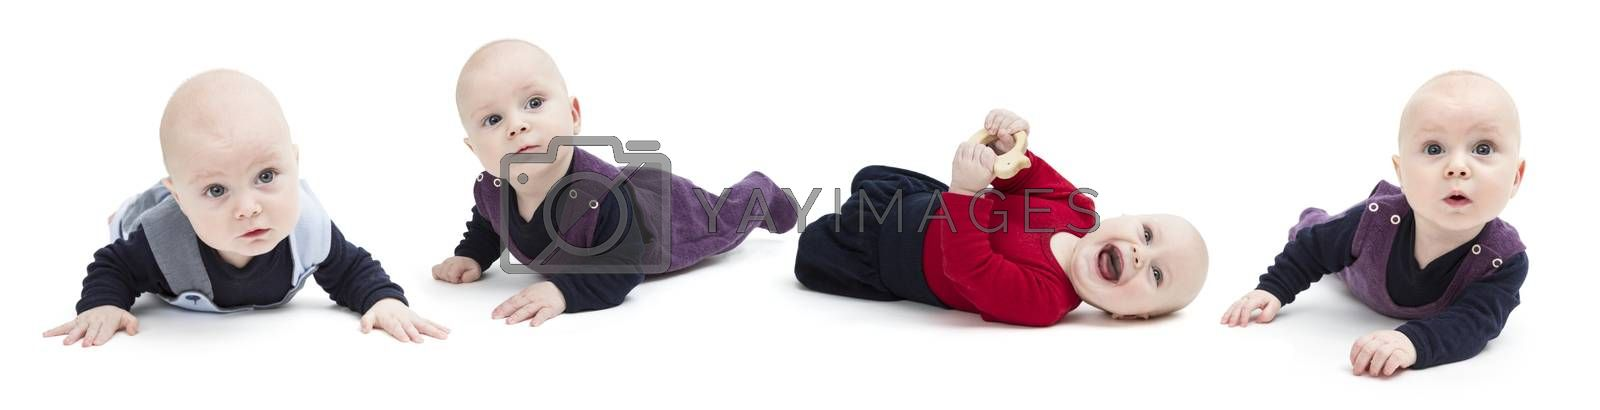 Royalty free image of composing of toddler in different clothings by gewoldi